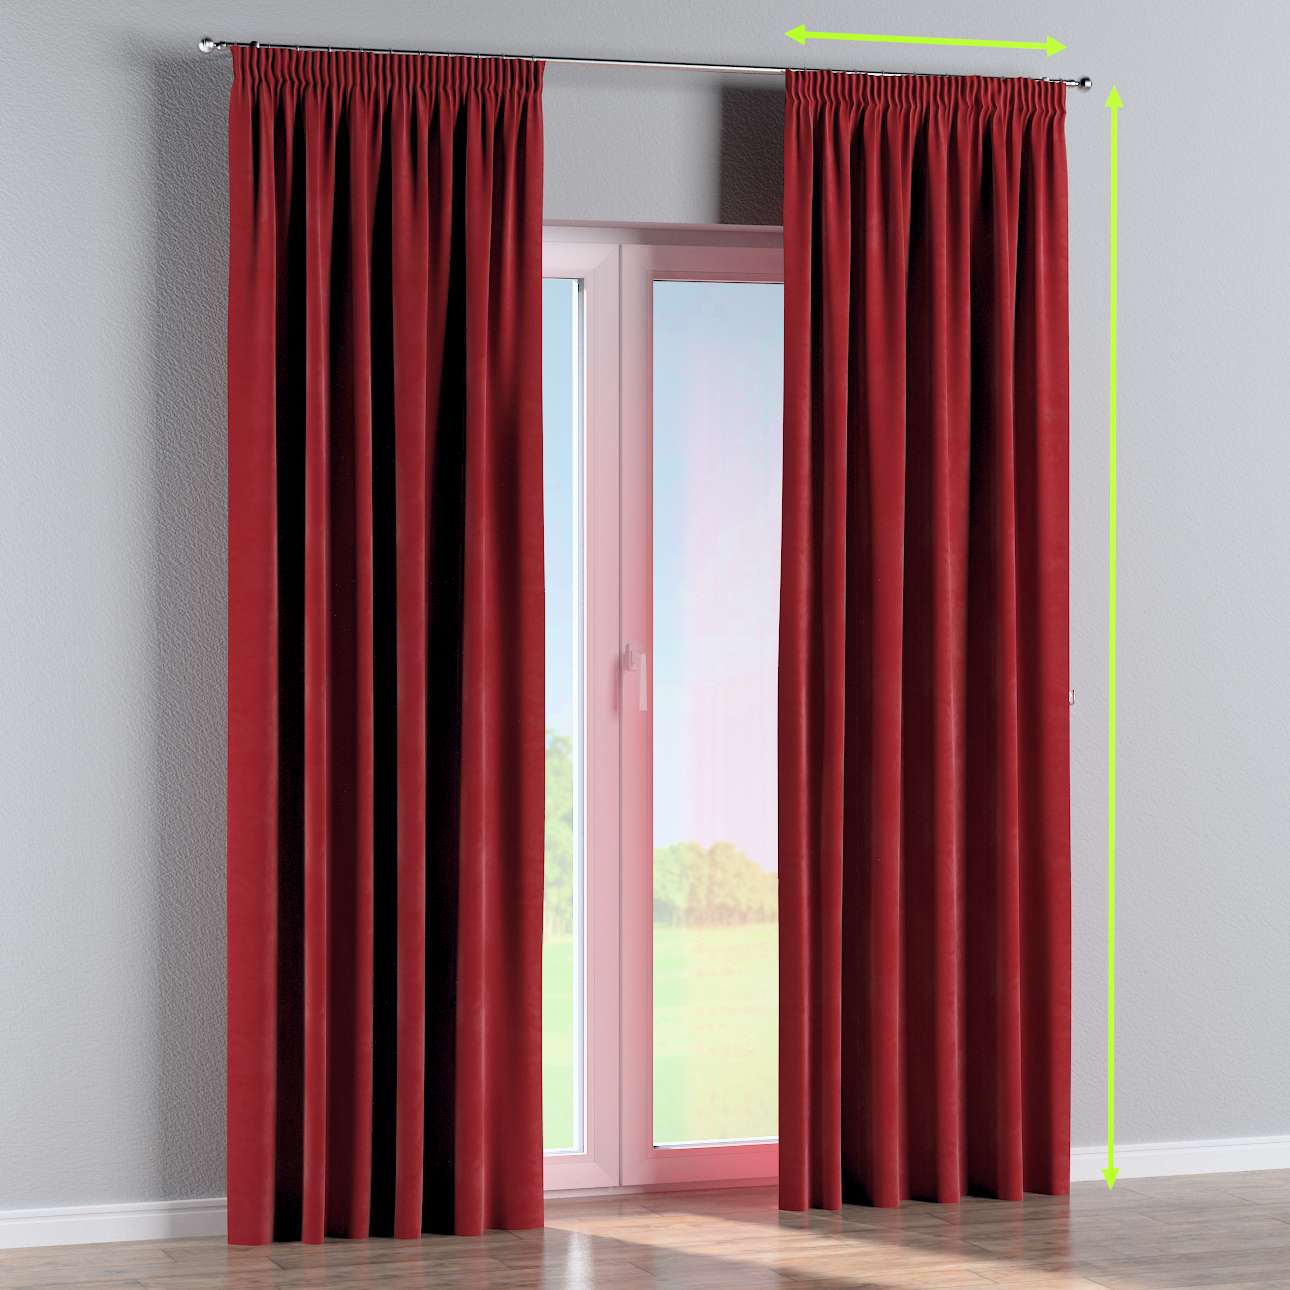 Pencil pleat lined curtains in collection Velvet, fabric: 704-15